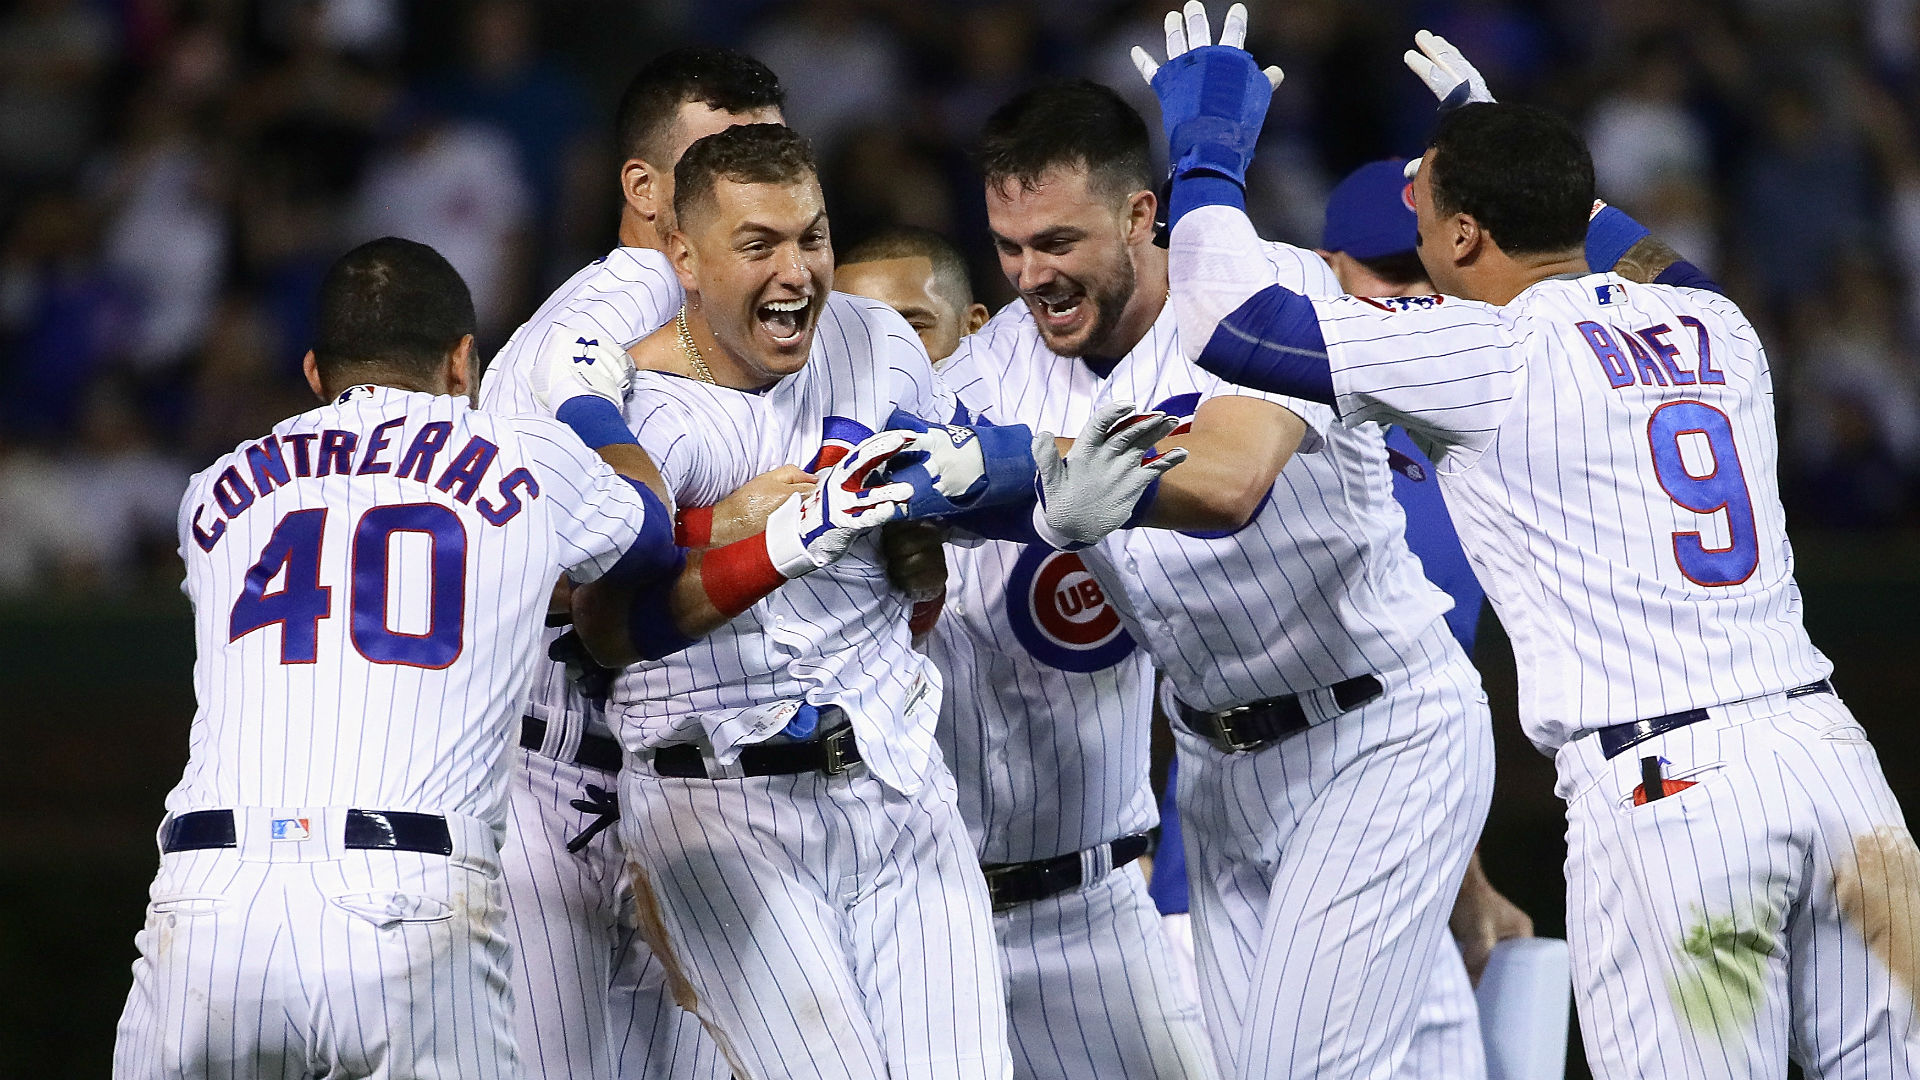 Albert-almora-jr-and-cubs-celebrate_1kbbb71fqw7a41t7h1np42yhhp